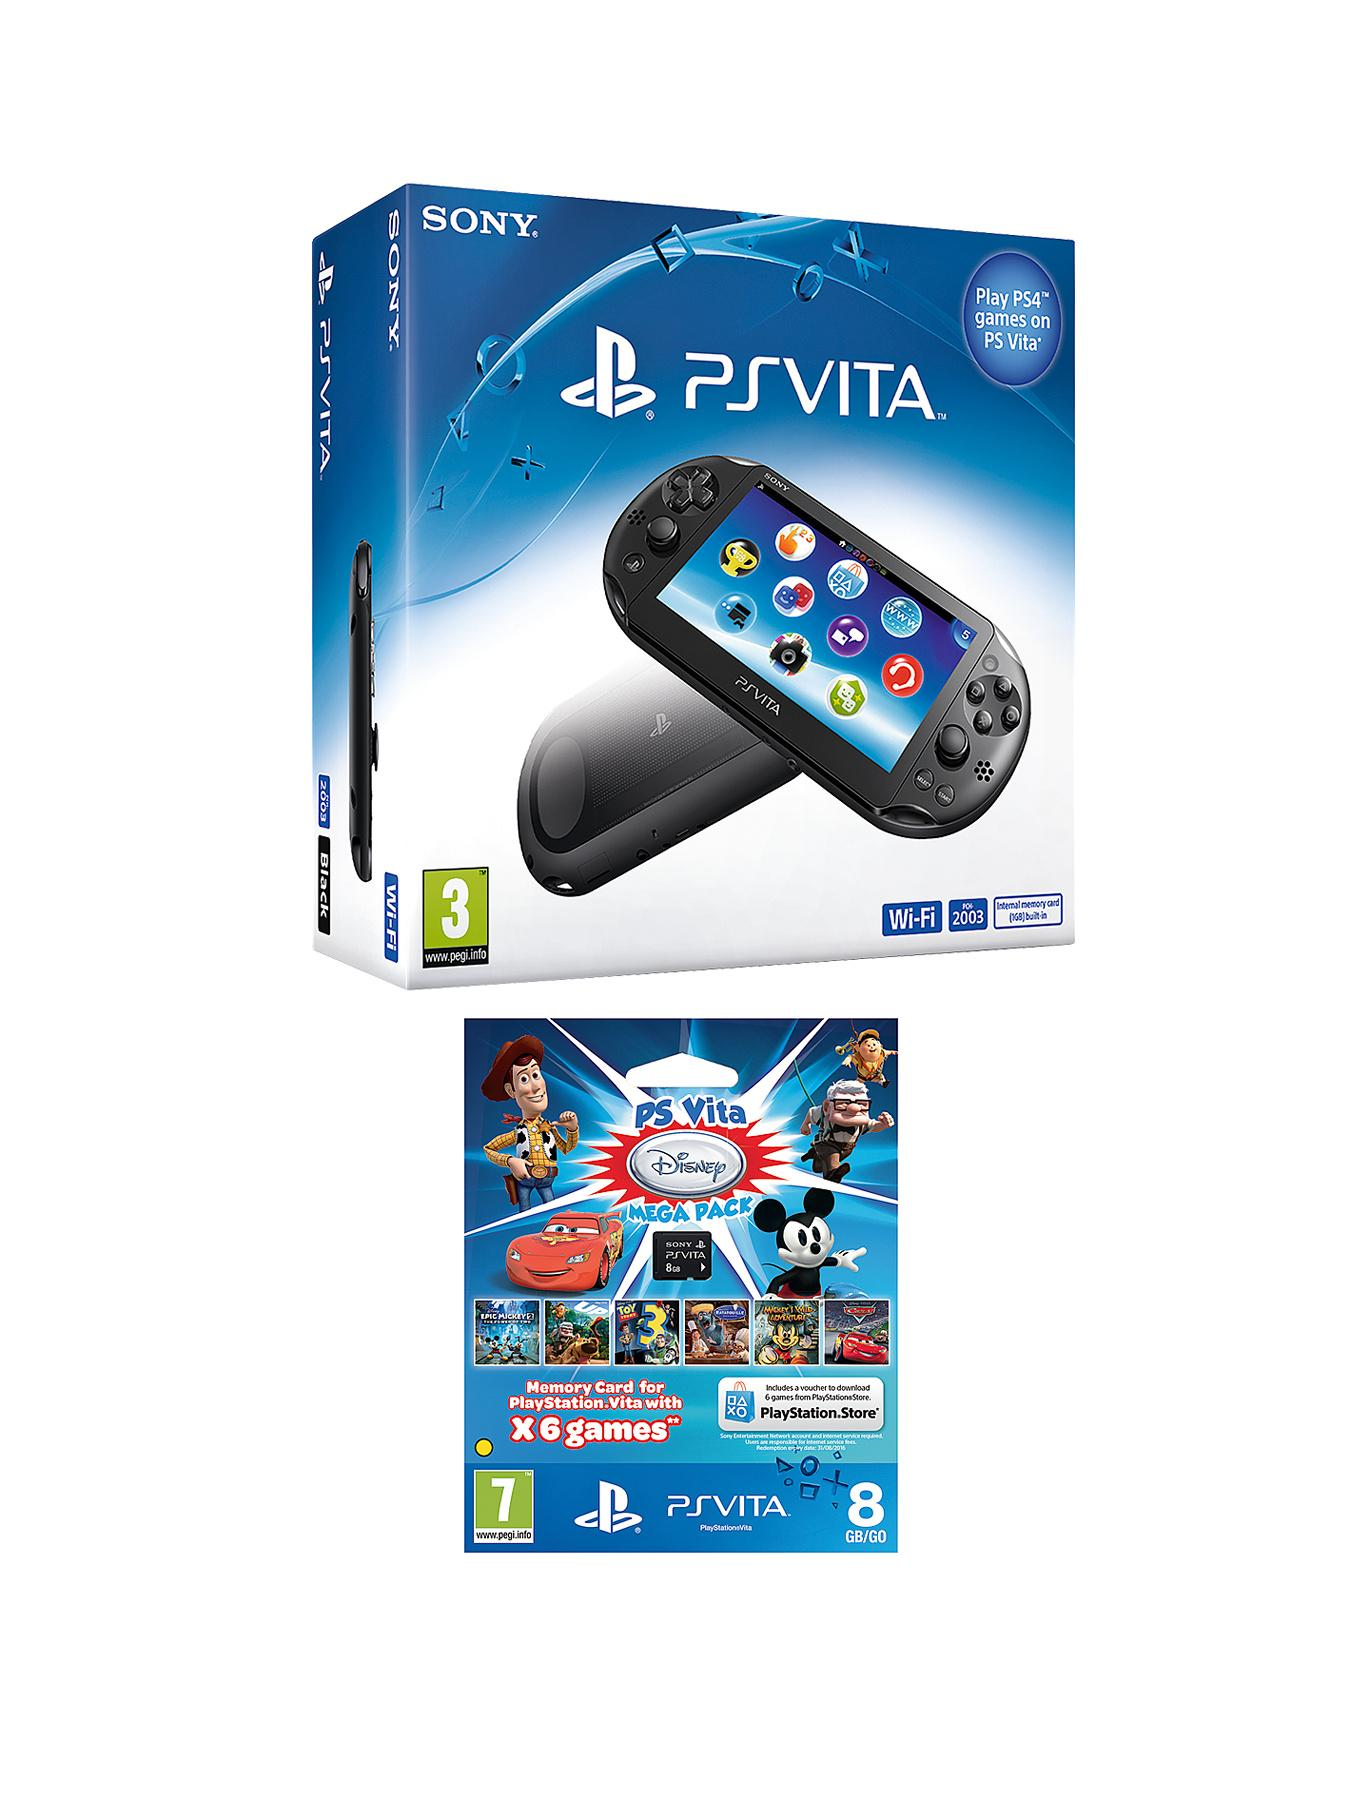 Slim Console with FREE 8GB Storage Mega Pack and Optional Deluxe Travel Case